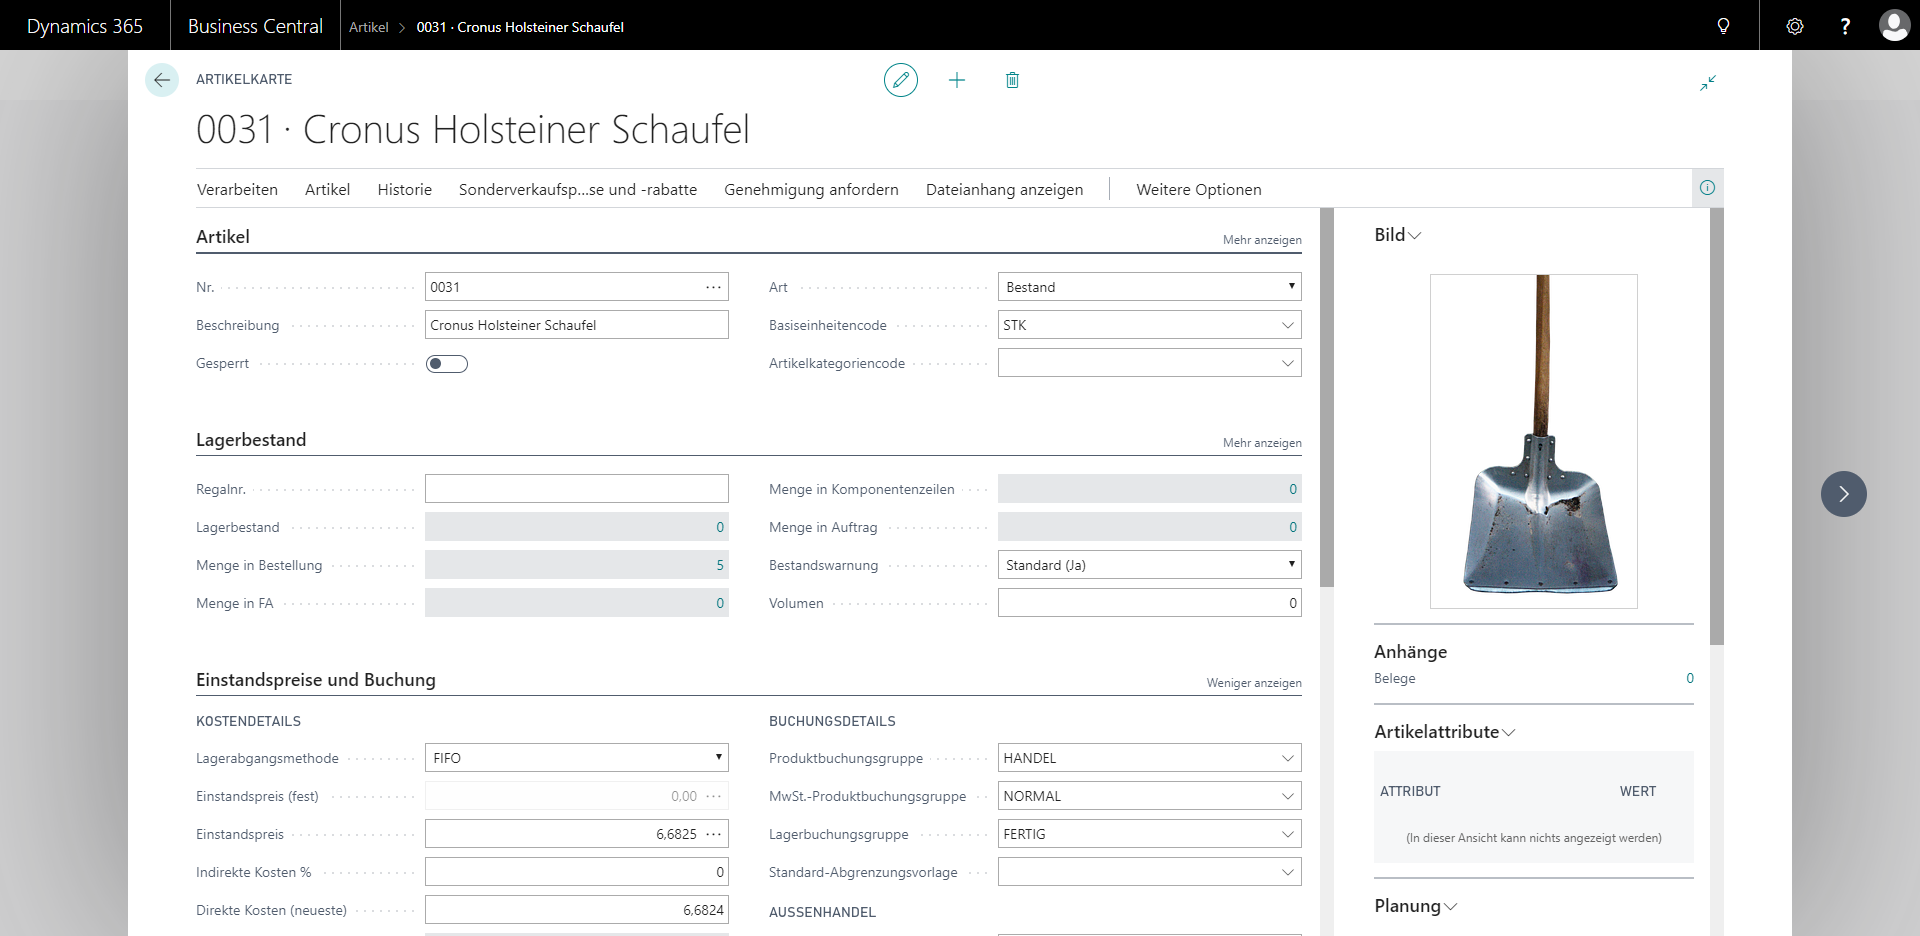 Detailansicht eines Artikels in eCOUNT Dynamics 365 Business Central